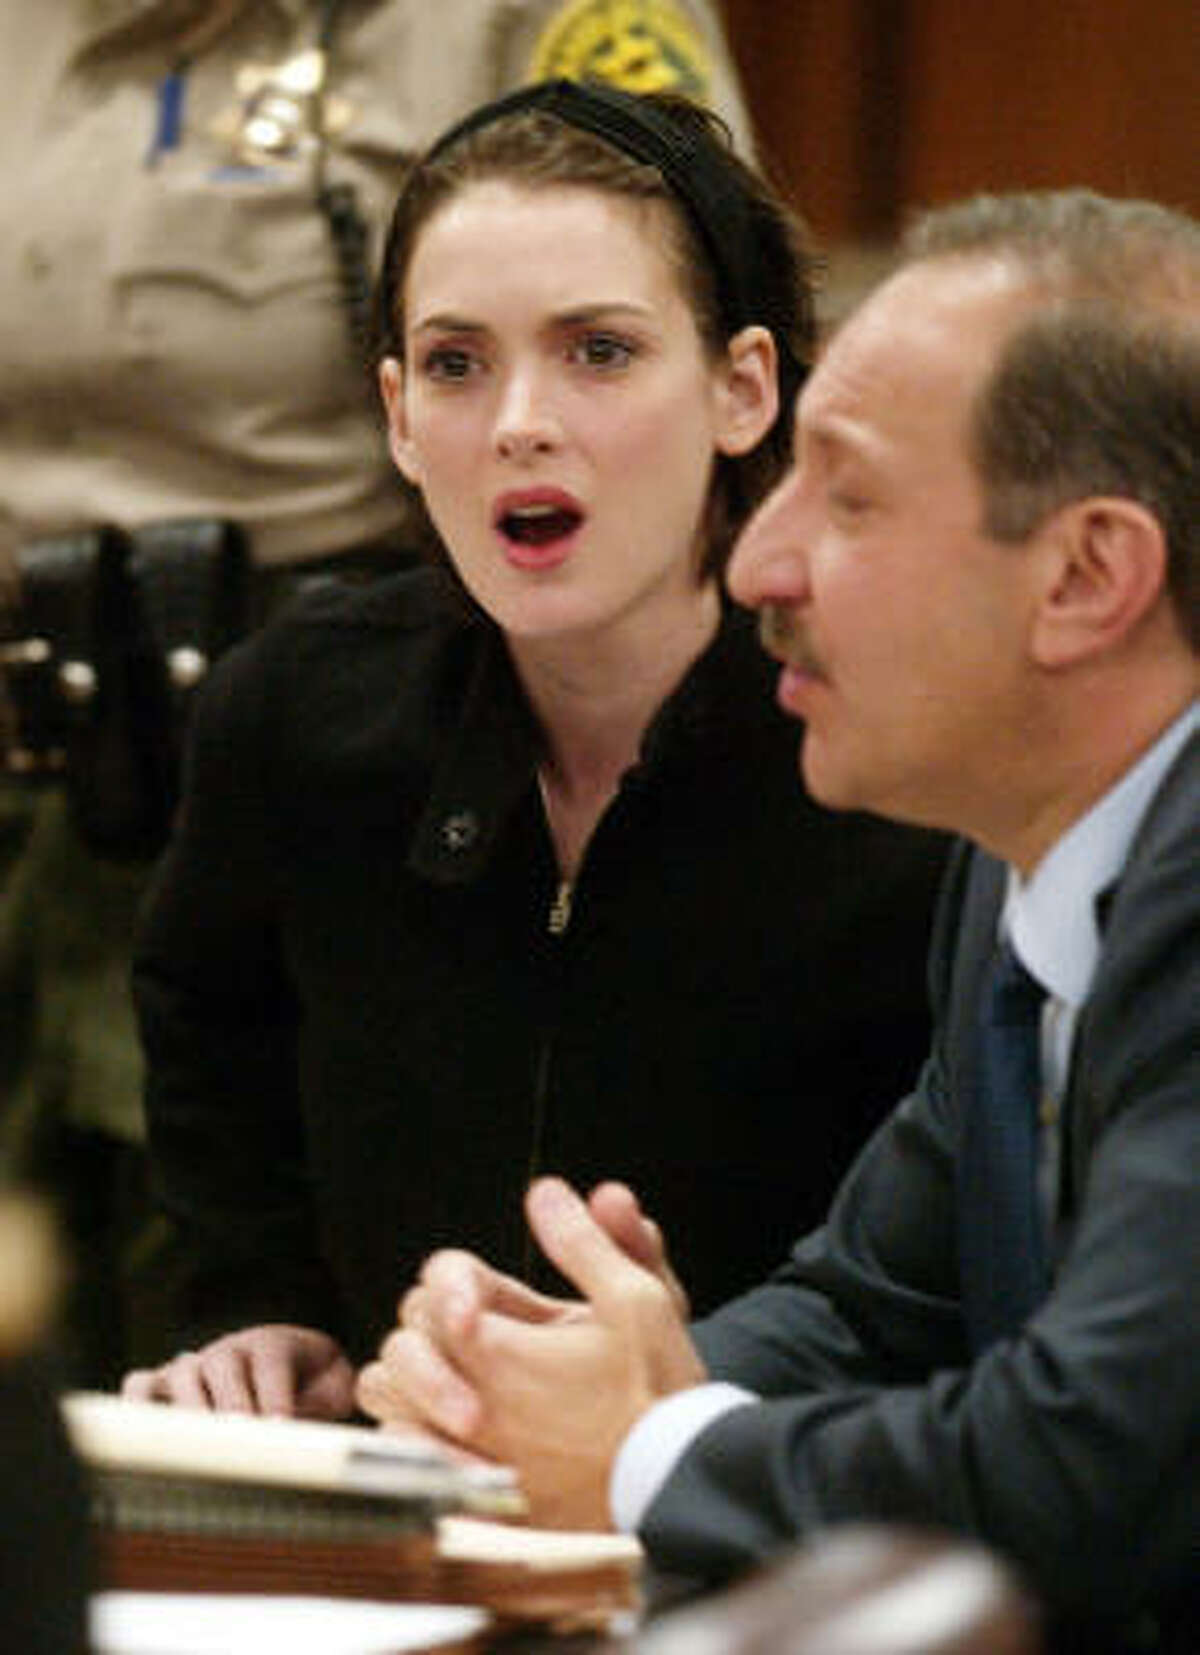 Actress Winona Ryder was arrested in 2001 for shoplifting for a Saks Fifth Avenue in Beverly Hills.